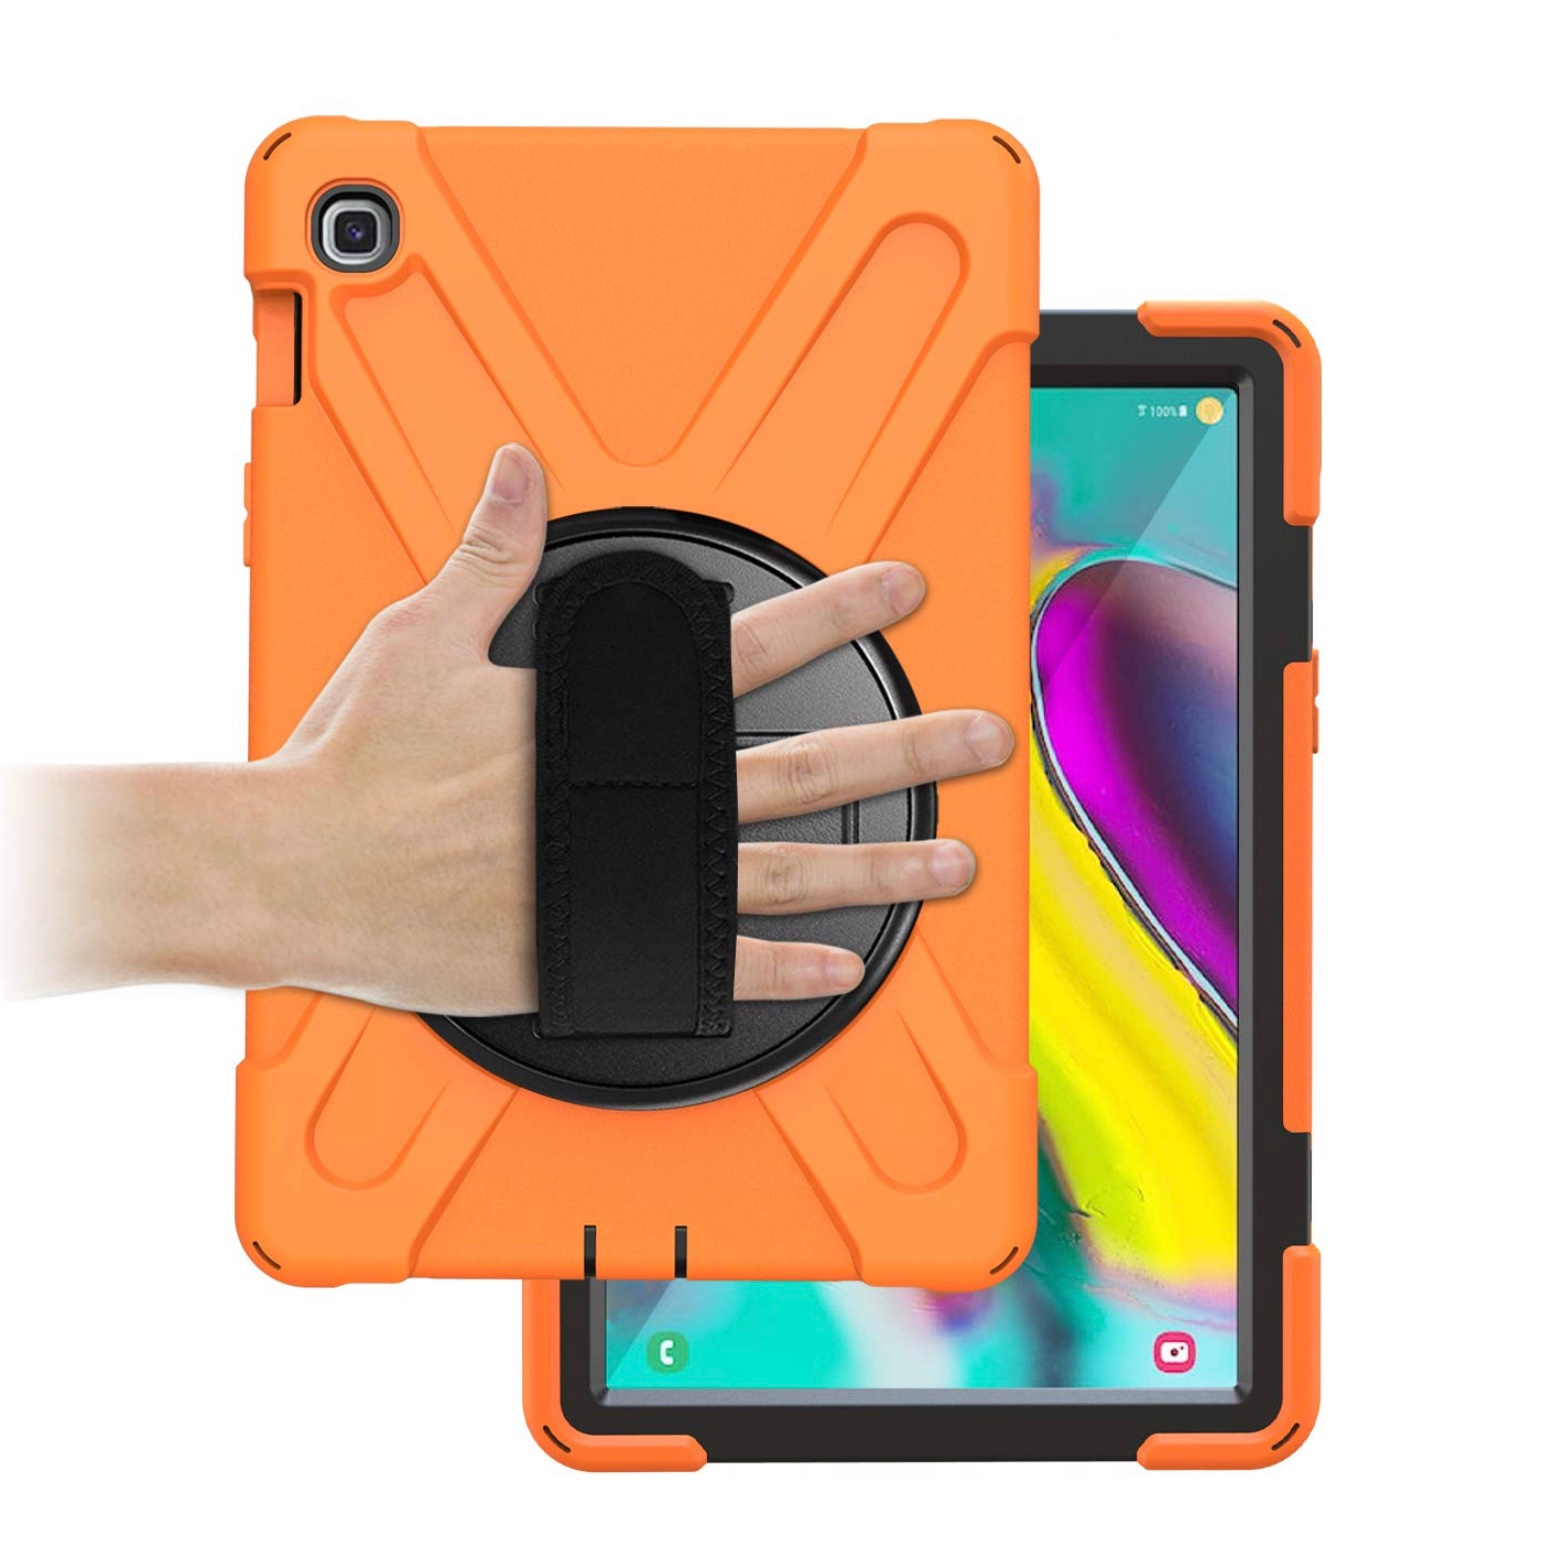 Coque de protection Vancouver Orange Galaxy TAB S5e avec sangle main et verre de protection ecran